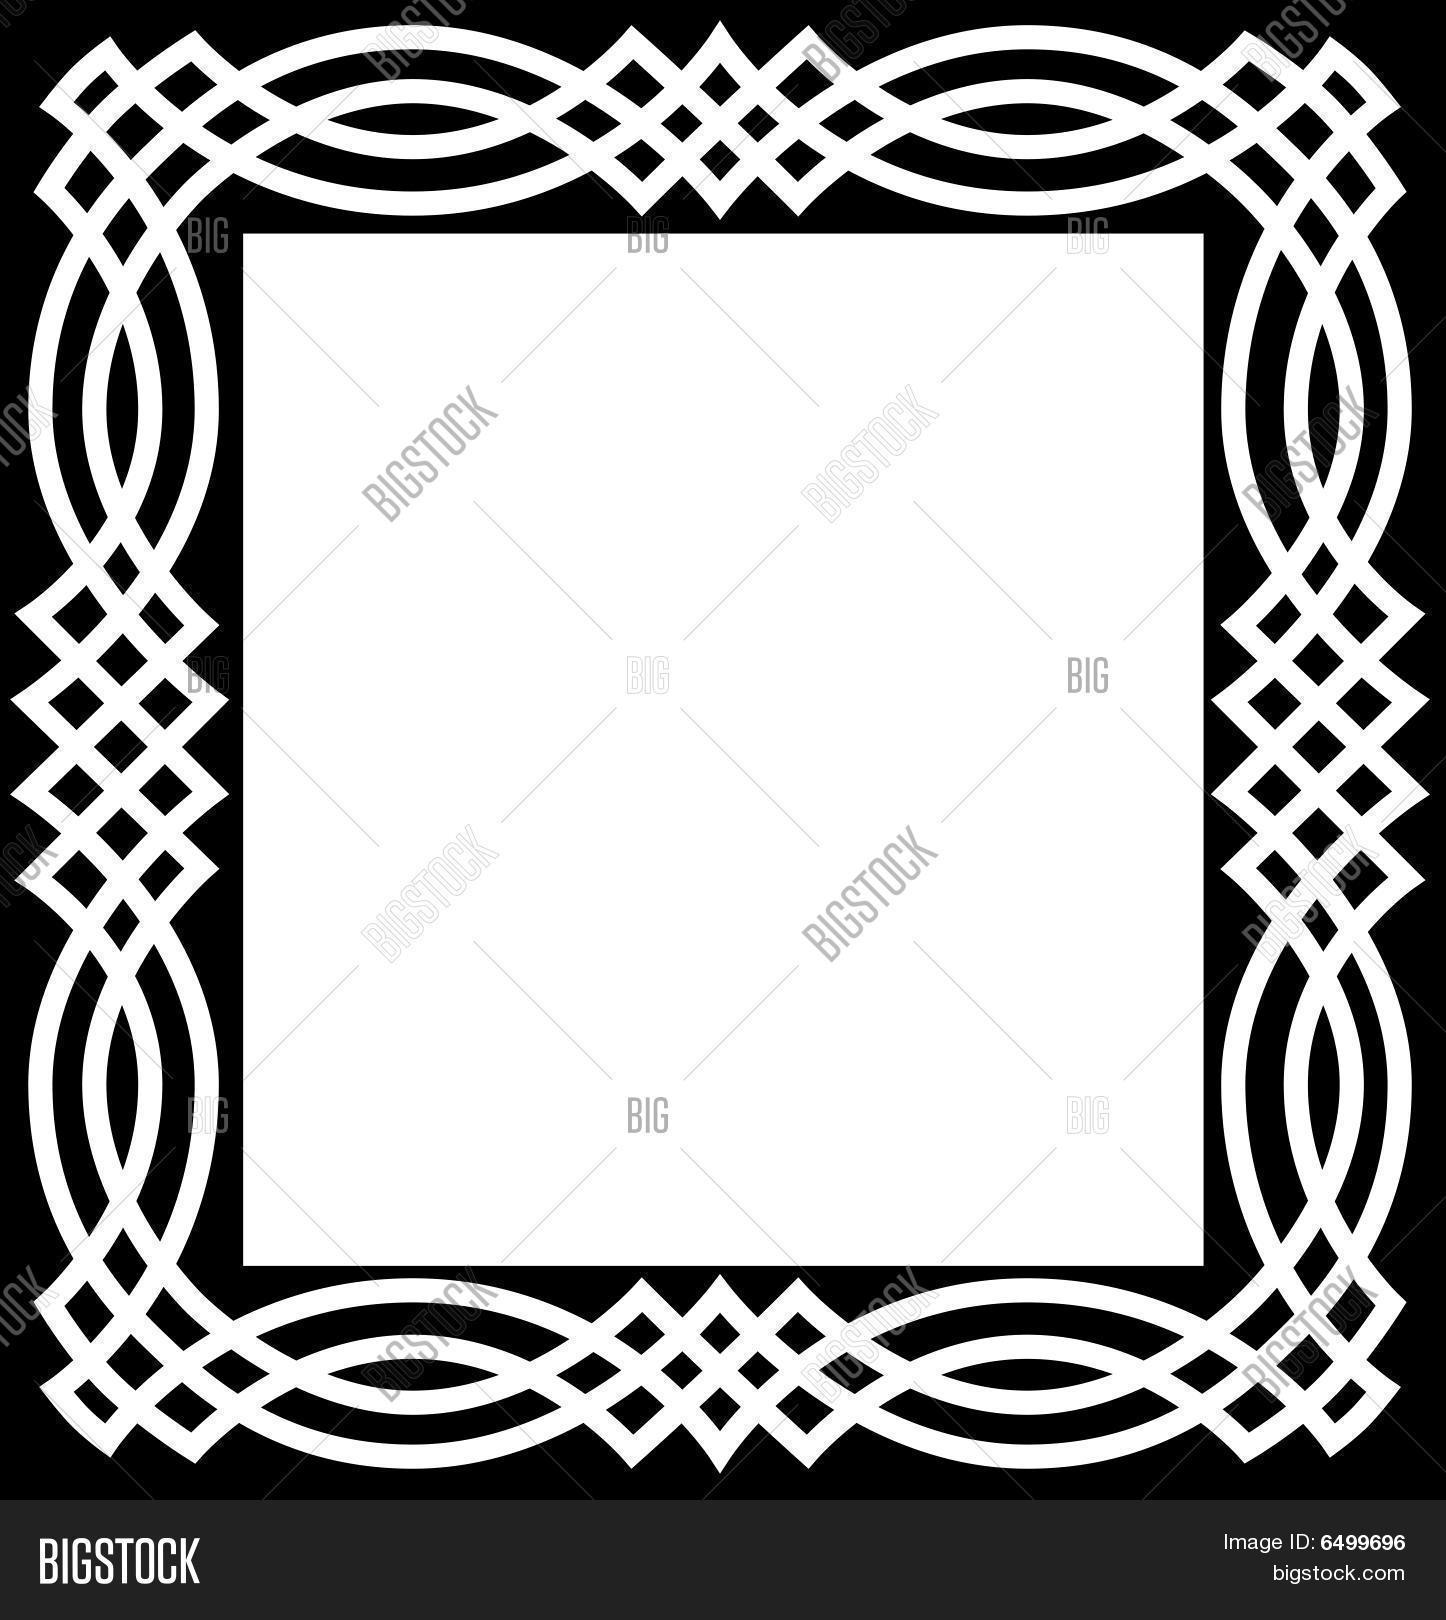 celtic knot border vector photo free trial bigstock rh bigstockphoto com celtic circle border vector free celtic circle border vector free